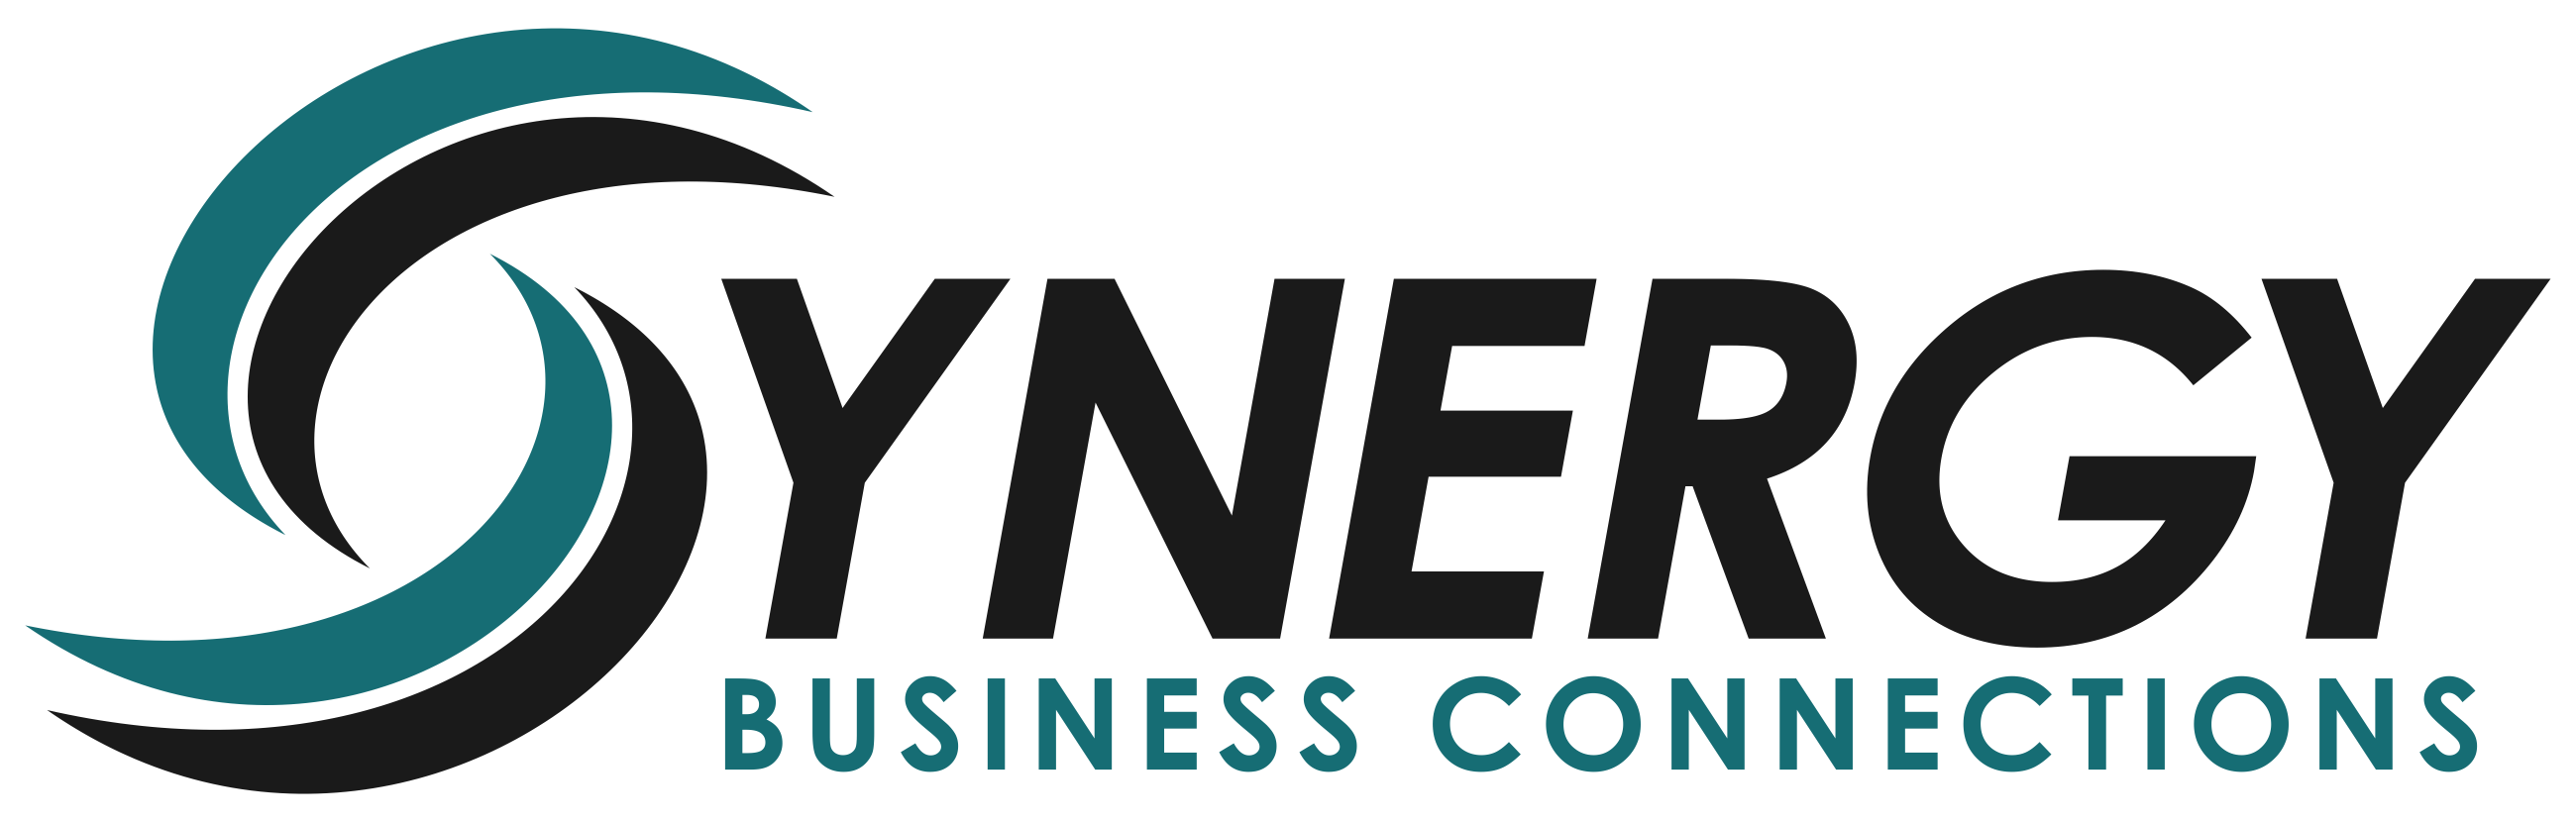 Synergy Business Connections Networking Group | Greater Conejo Valley Chamber of Commerce